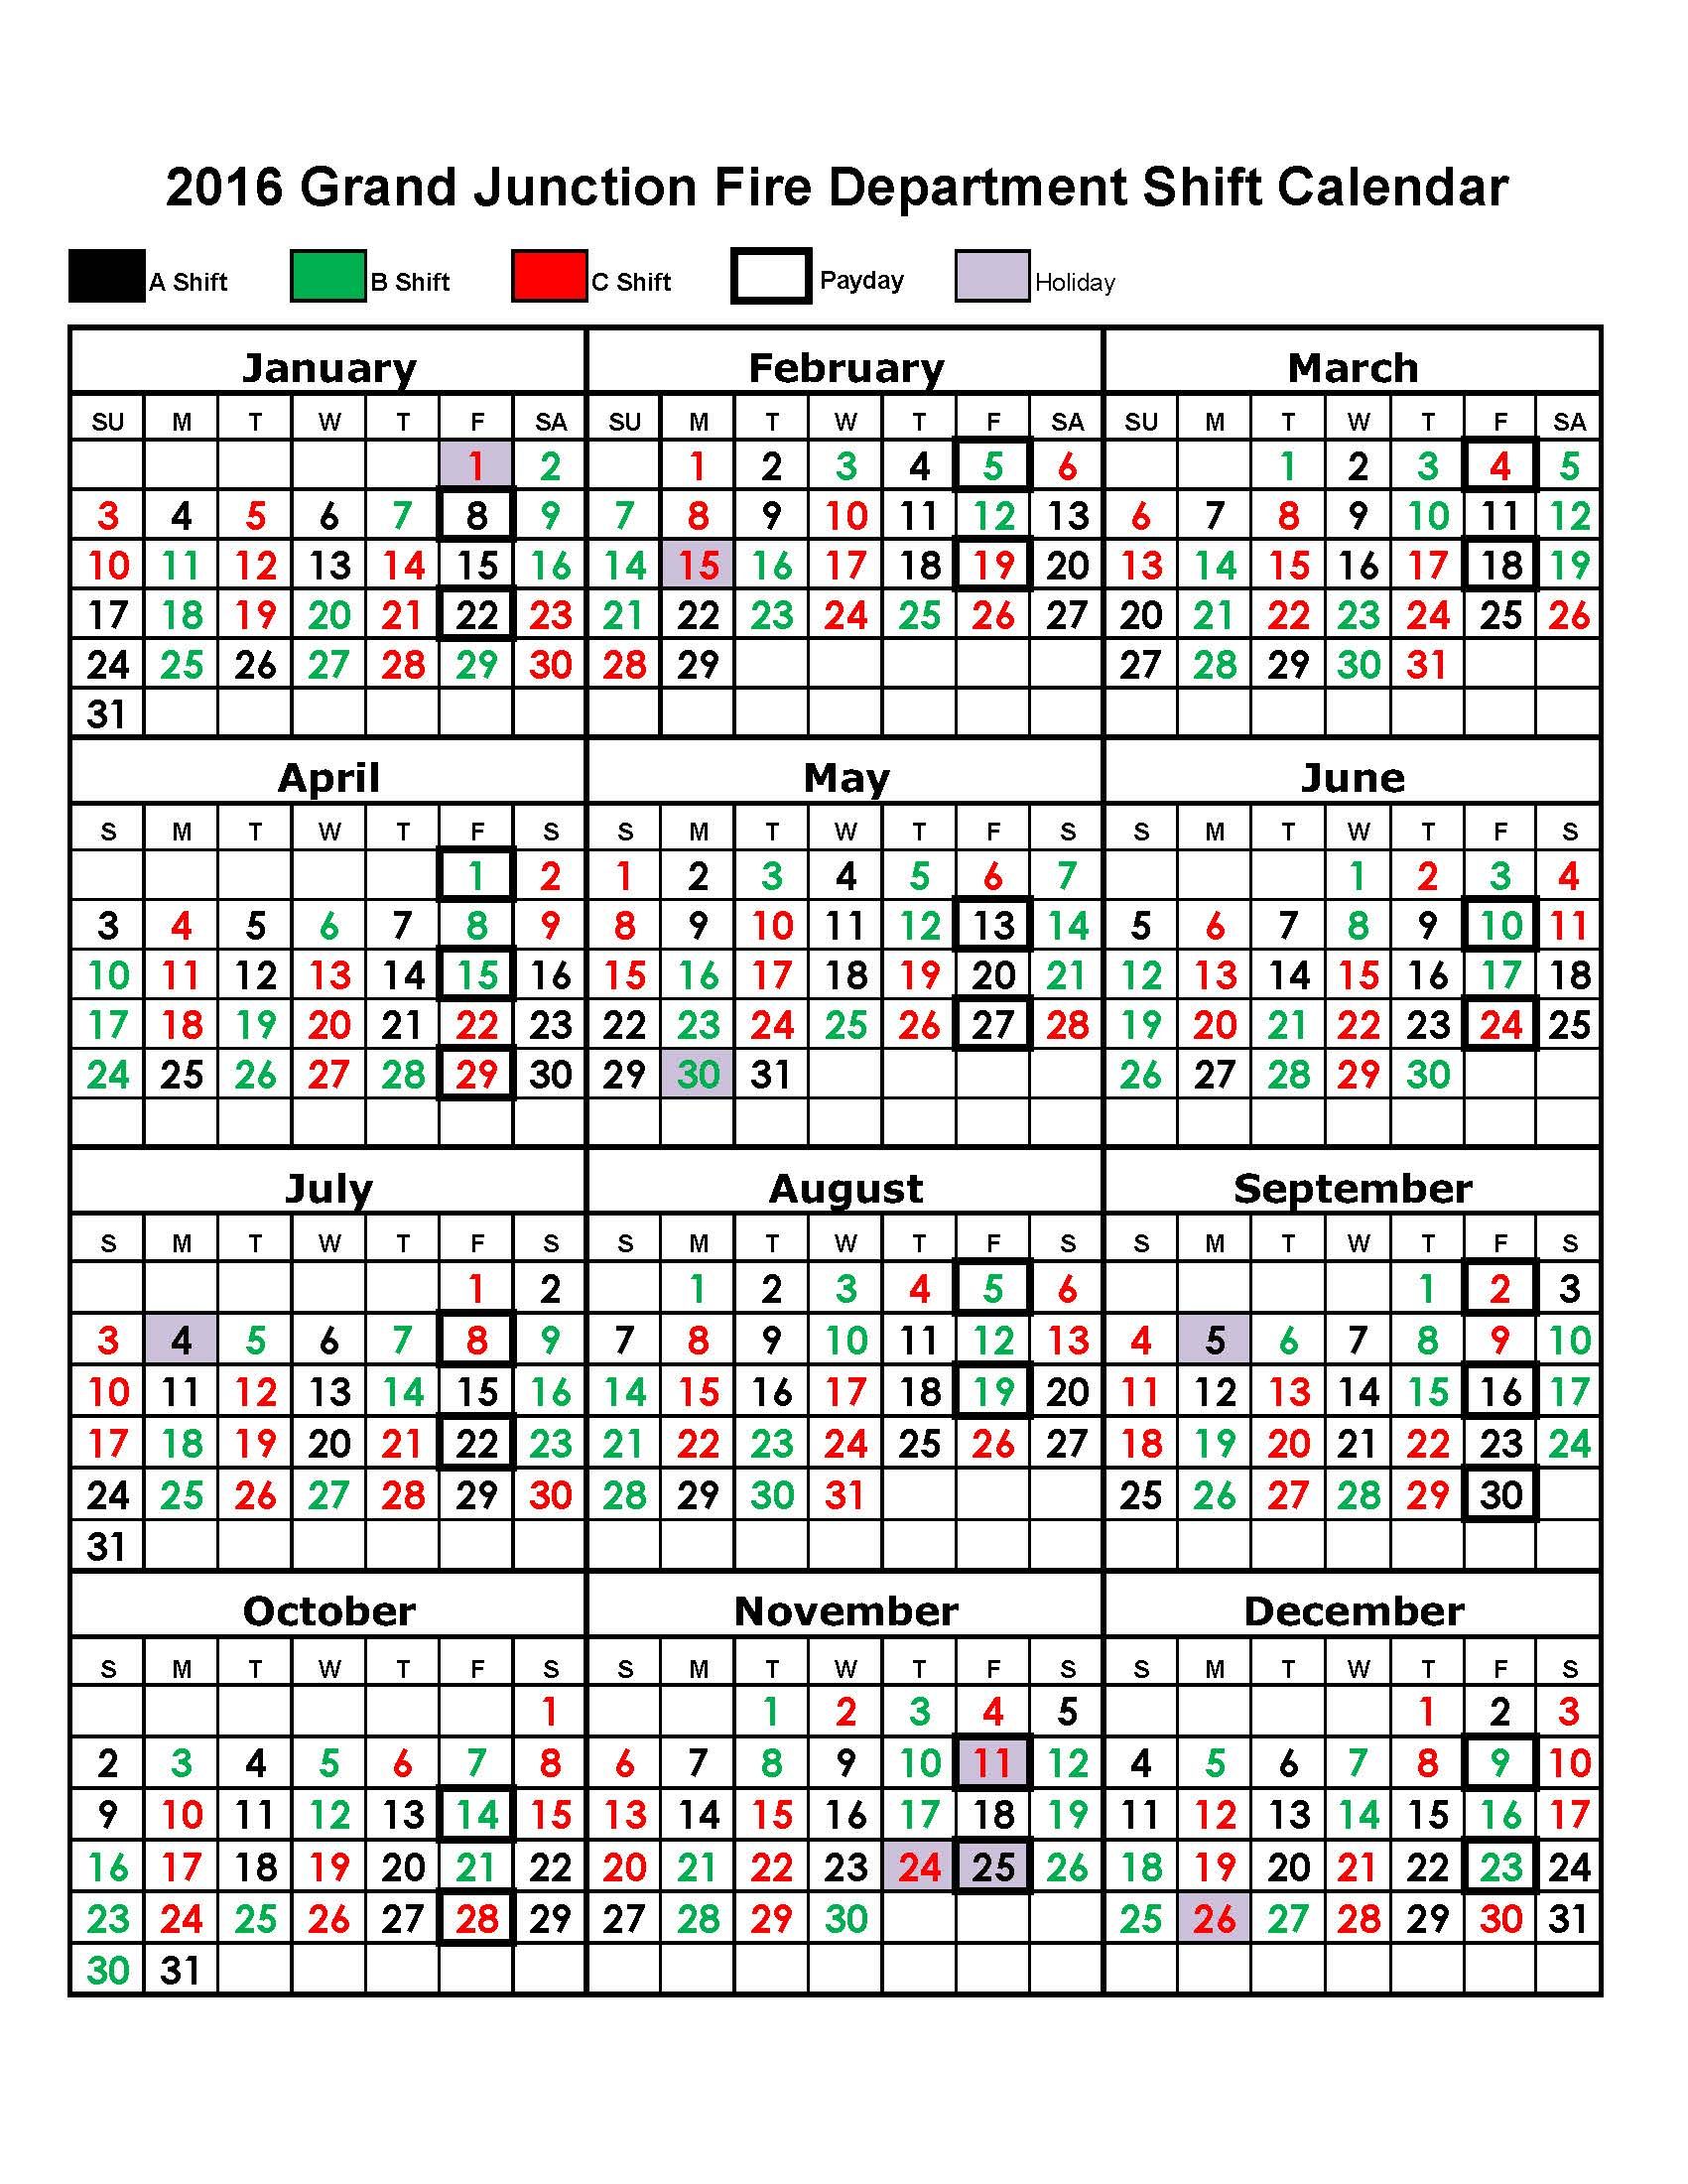 shift schedule template - shefftunes.tk